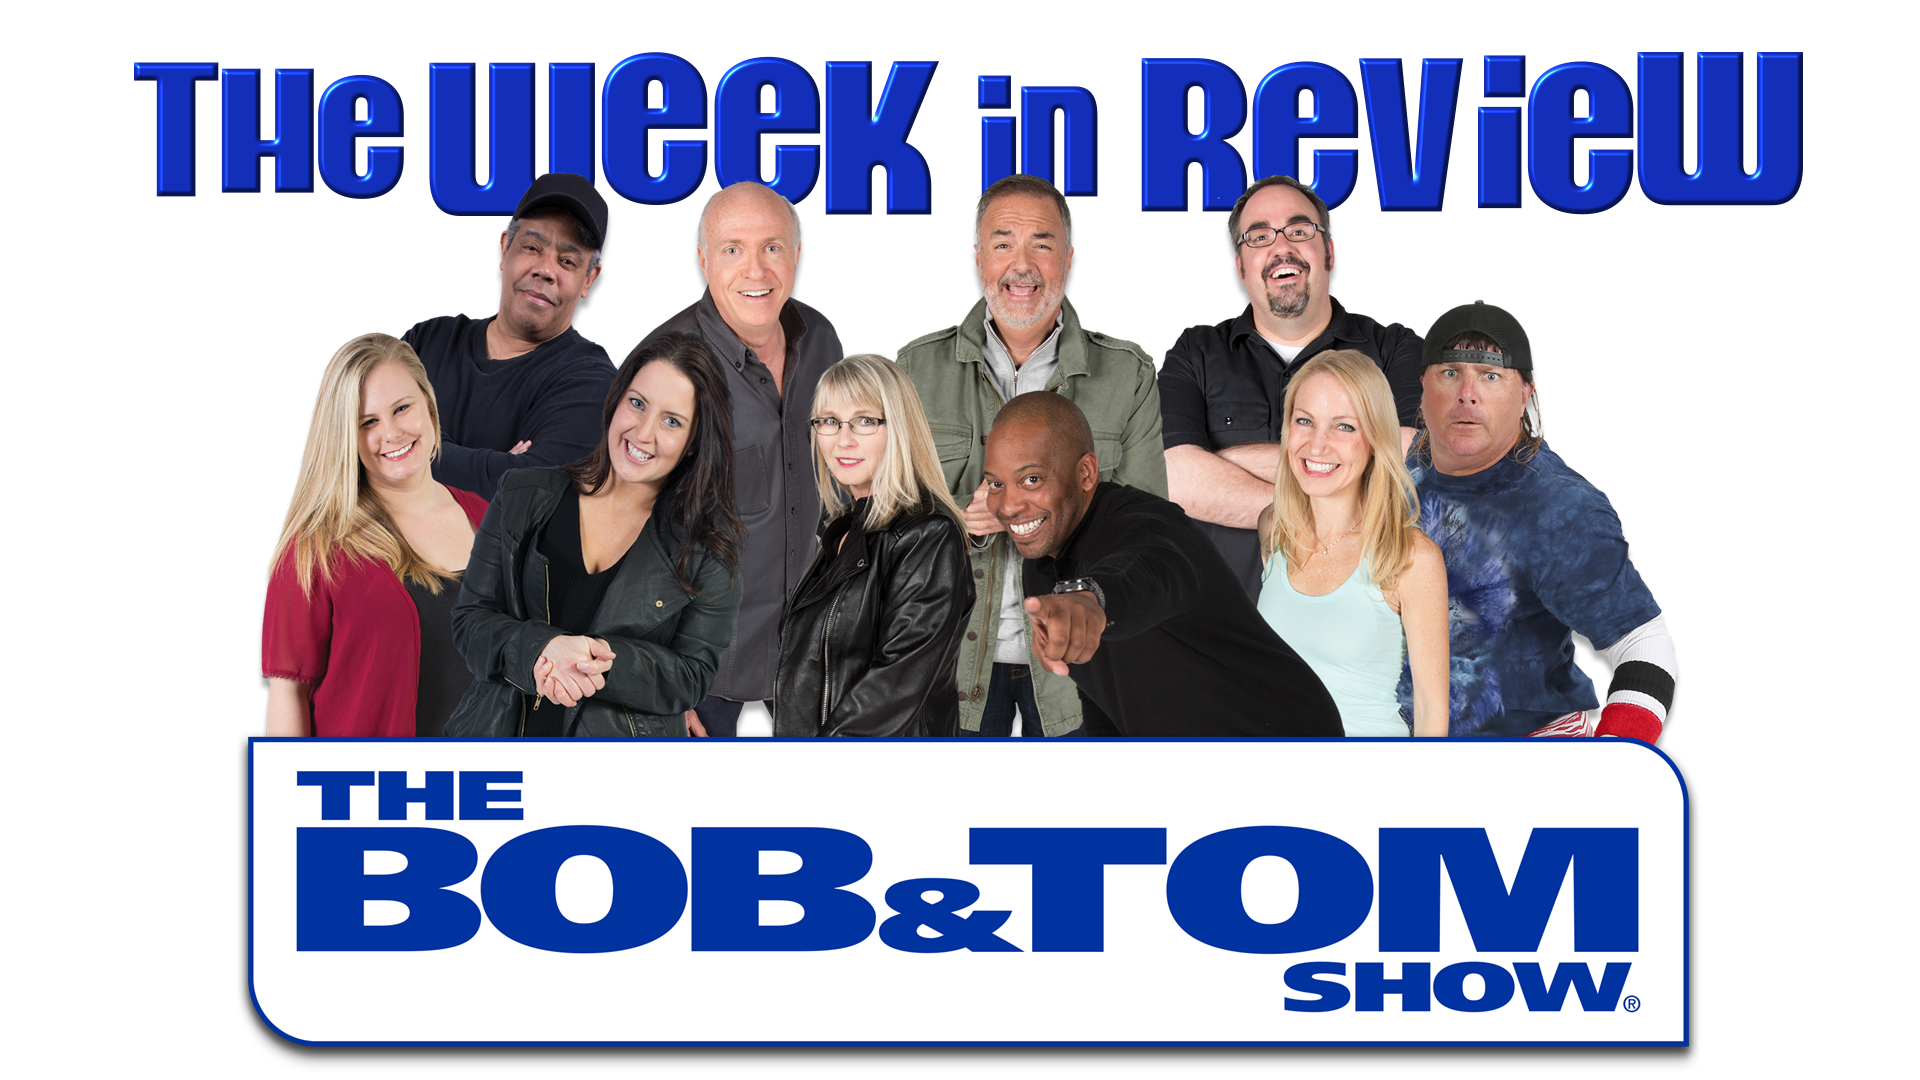 The BOB & TOM Show Week in Review – April 5, 2019